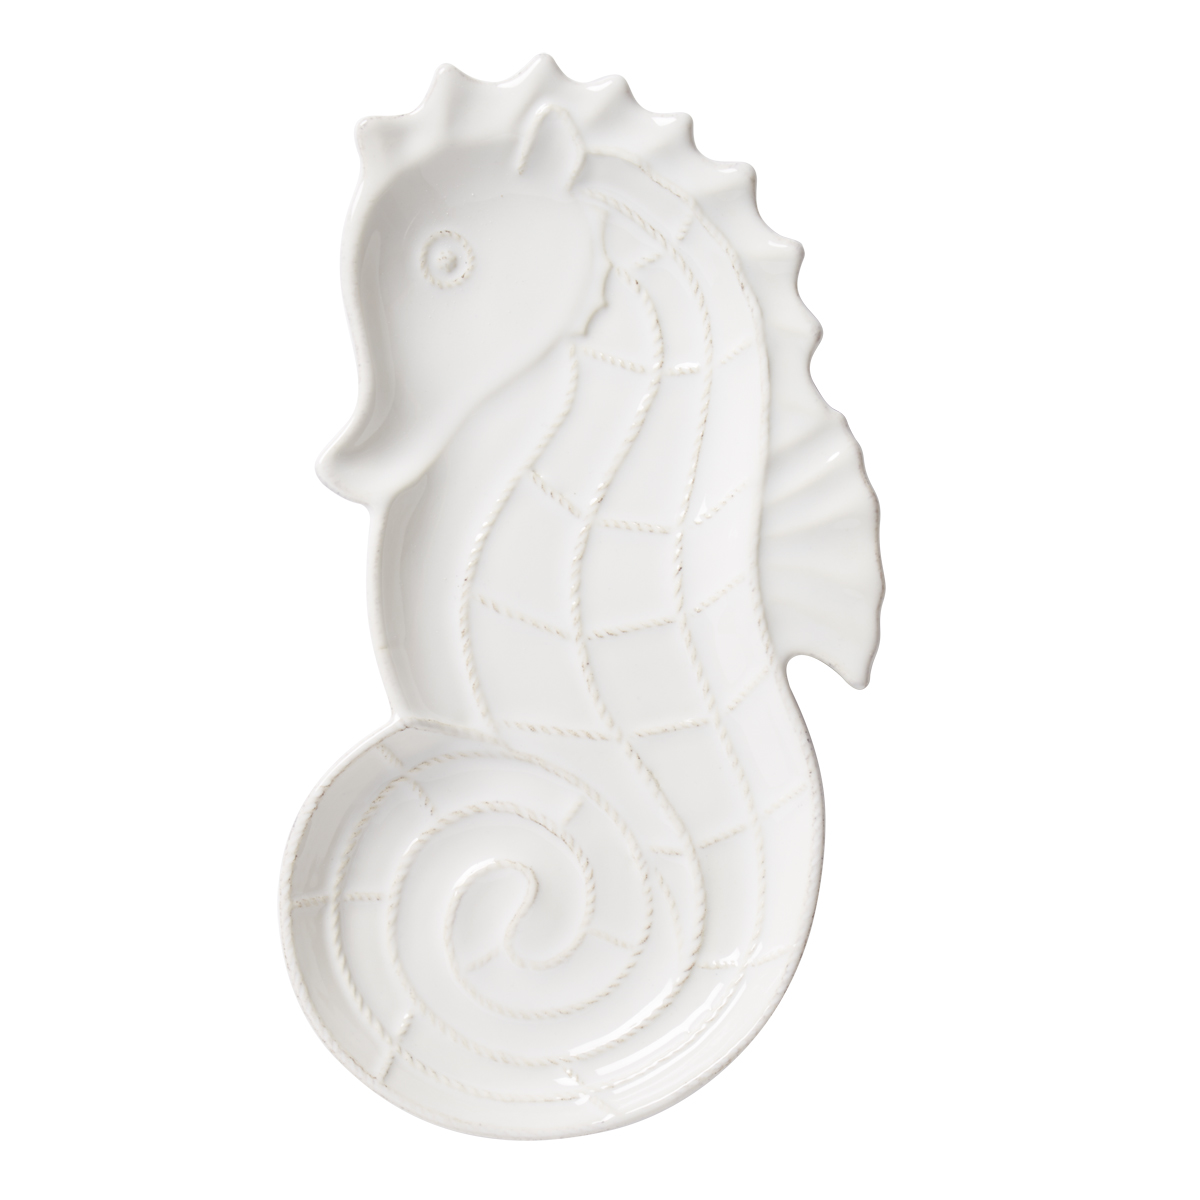 Juliska Berry & Thread Whitewash Seahorse Hostess Tray